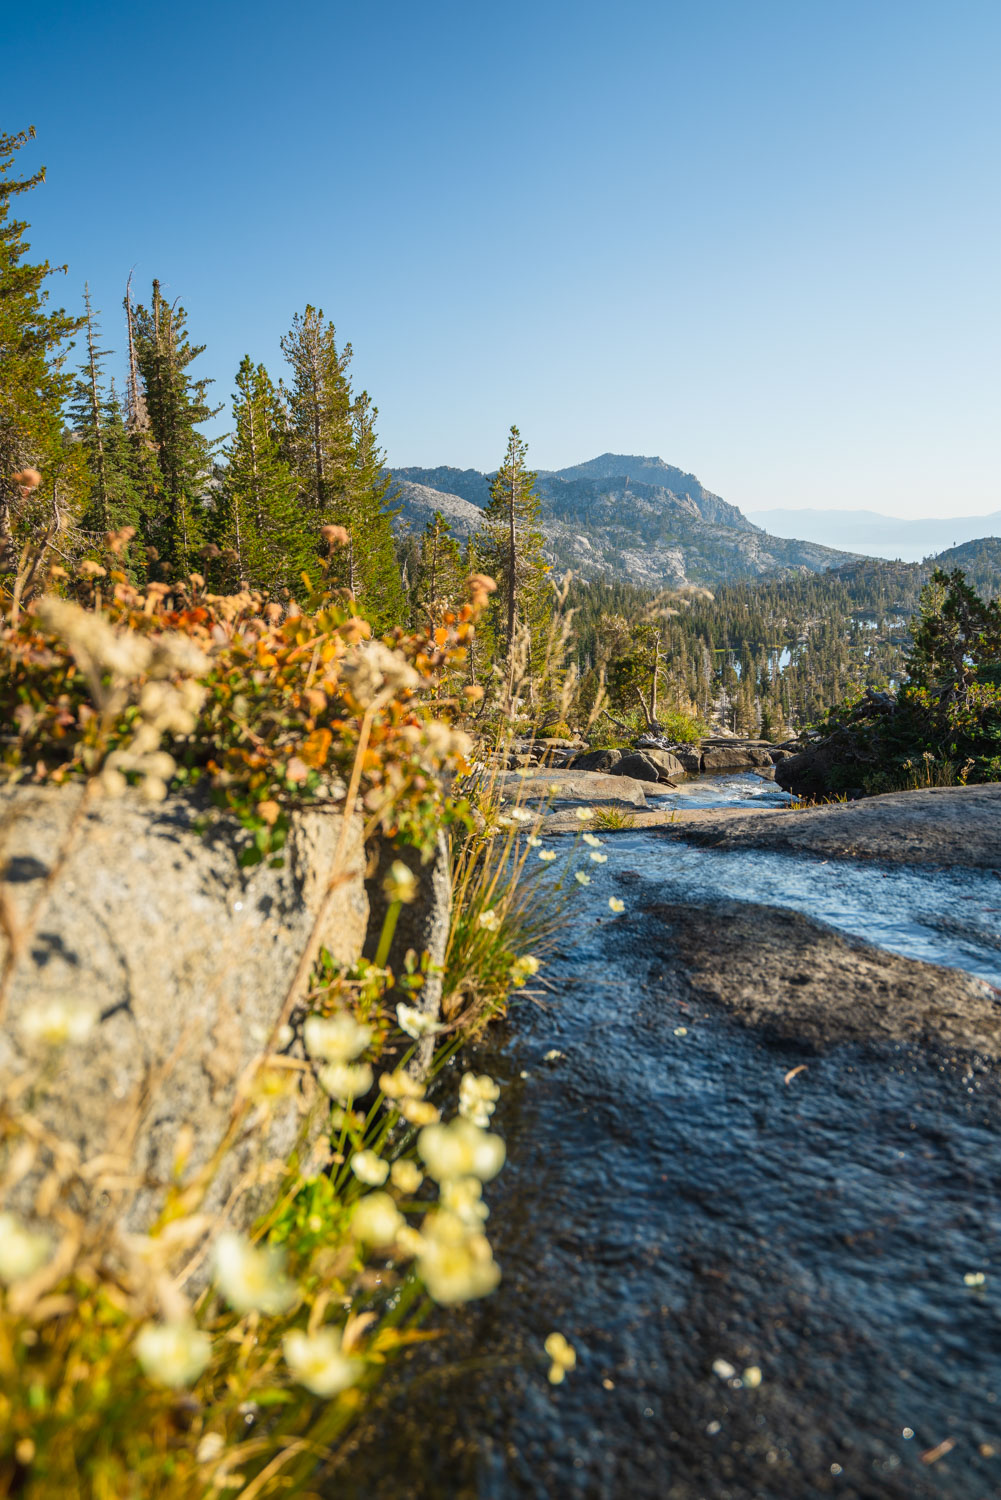 Wildflowers by Fontanillis Lake outlet